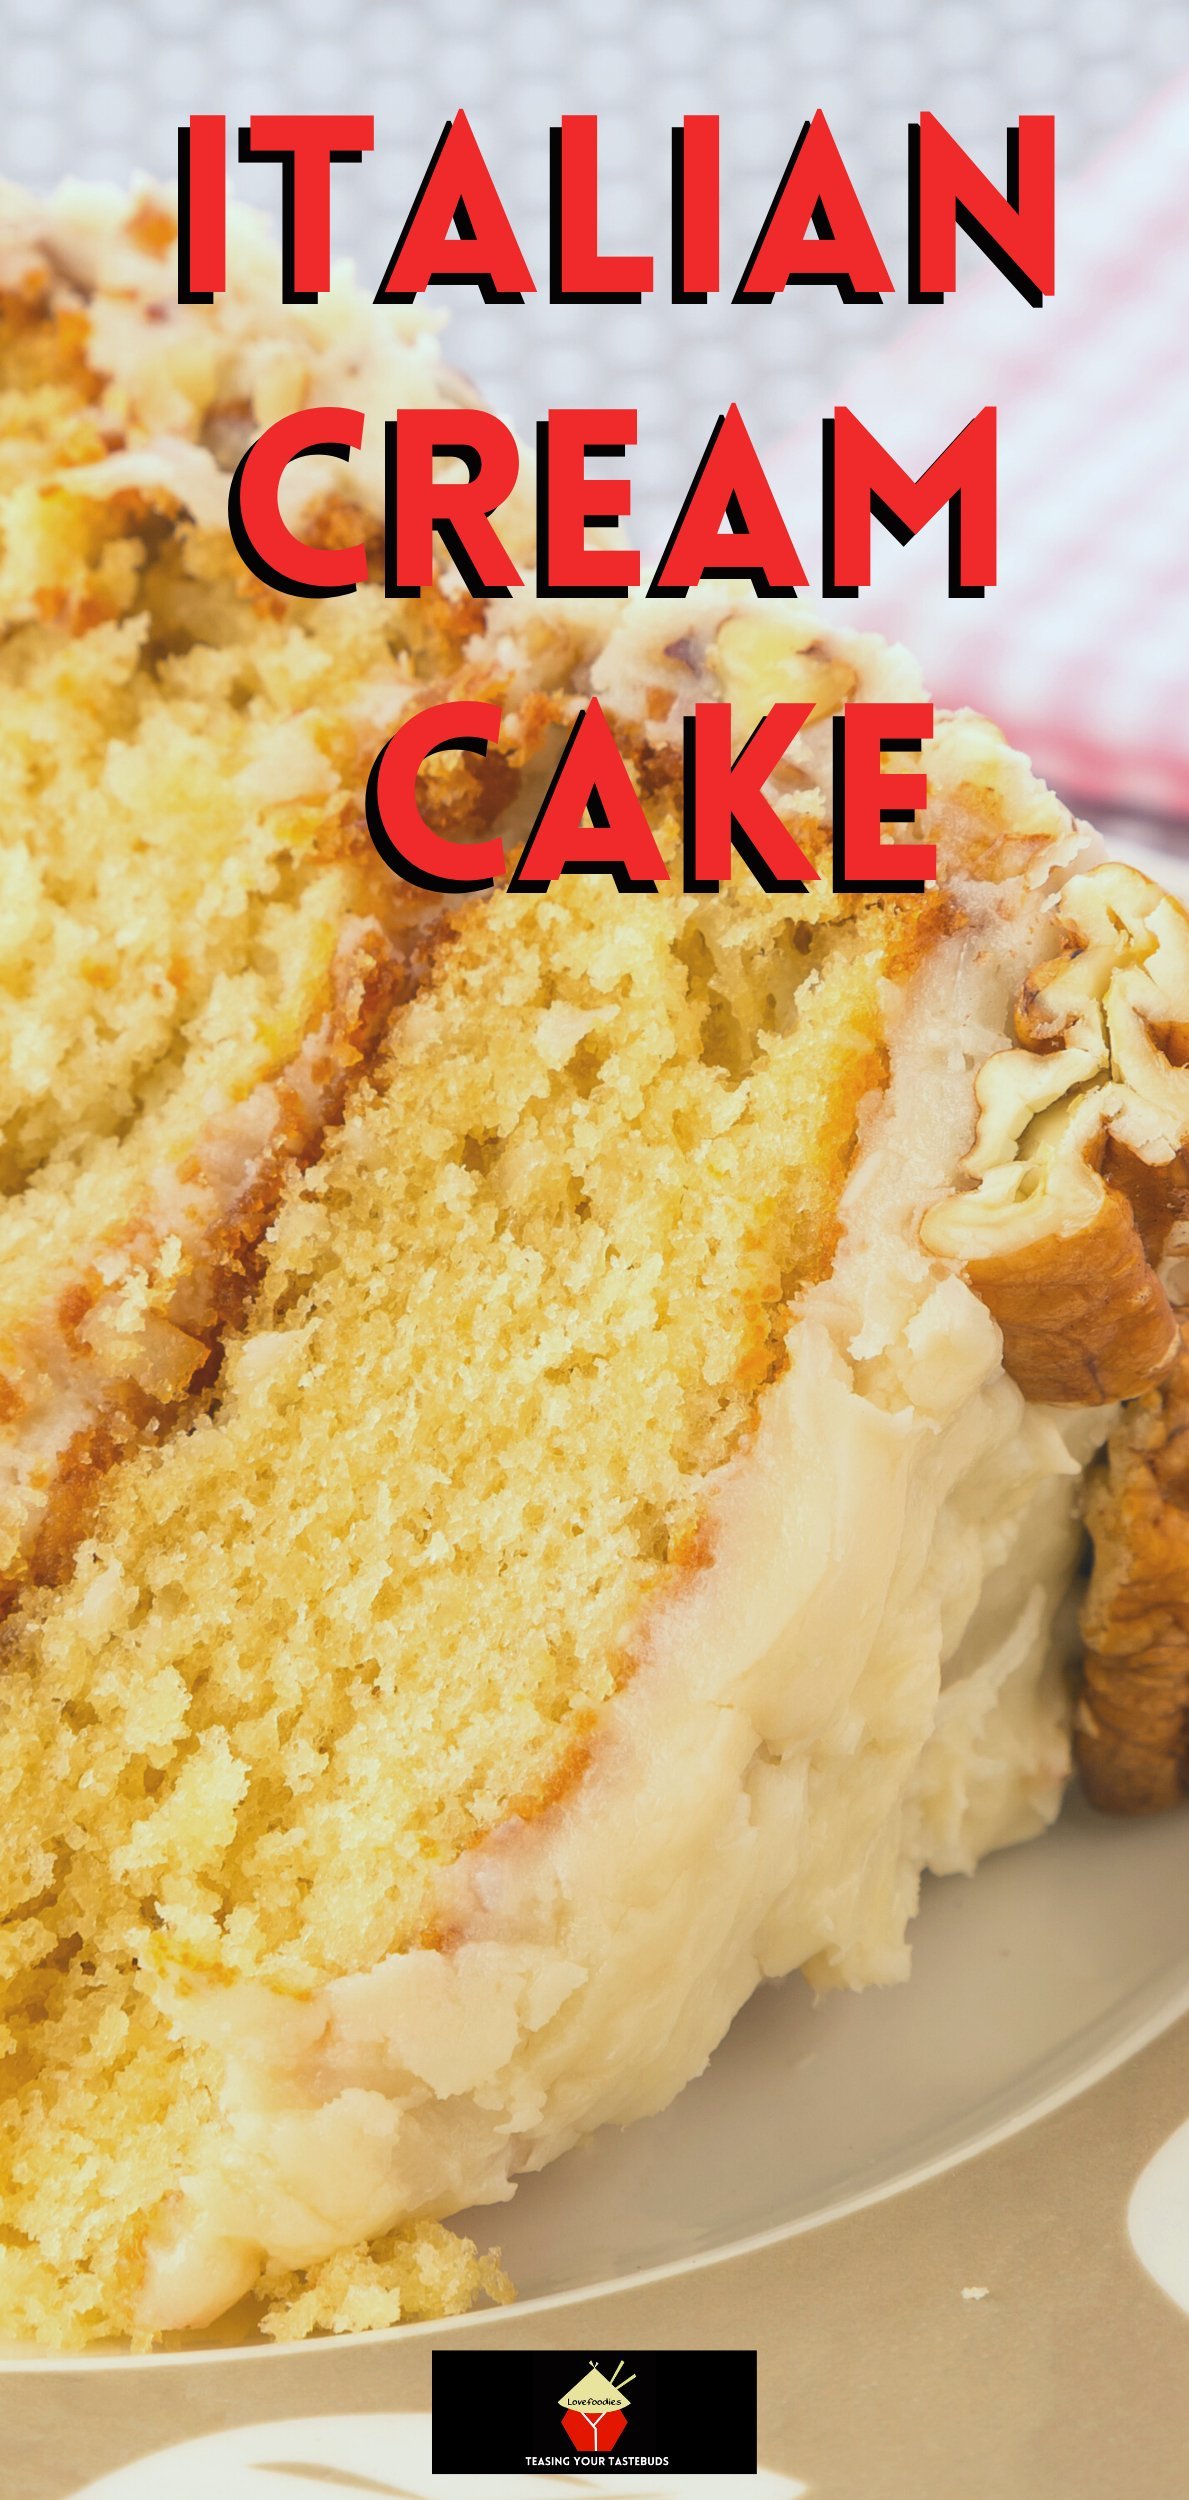 Italian Cream Cake is a delicious tender made from scratch cake bursting with coconut, vanilla, and pecans, with cream cheese frosting. A perfect celebration cake